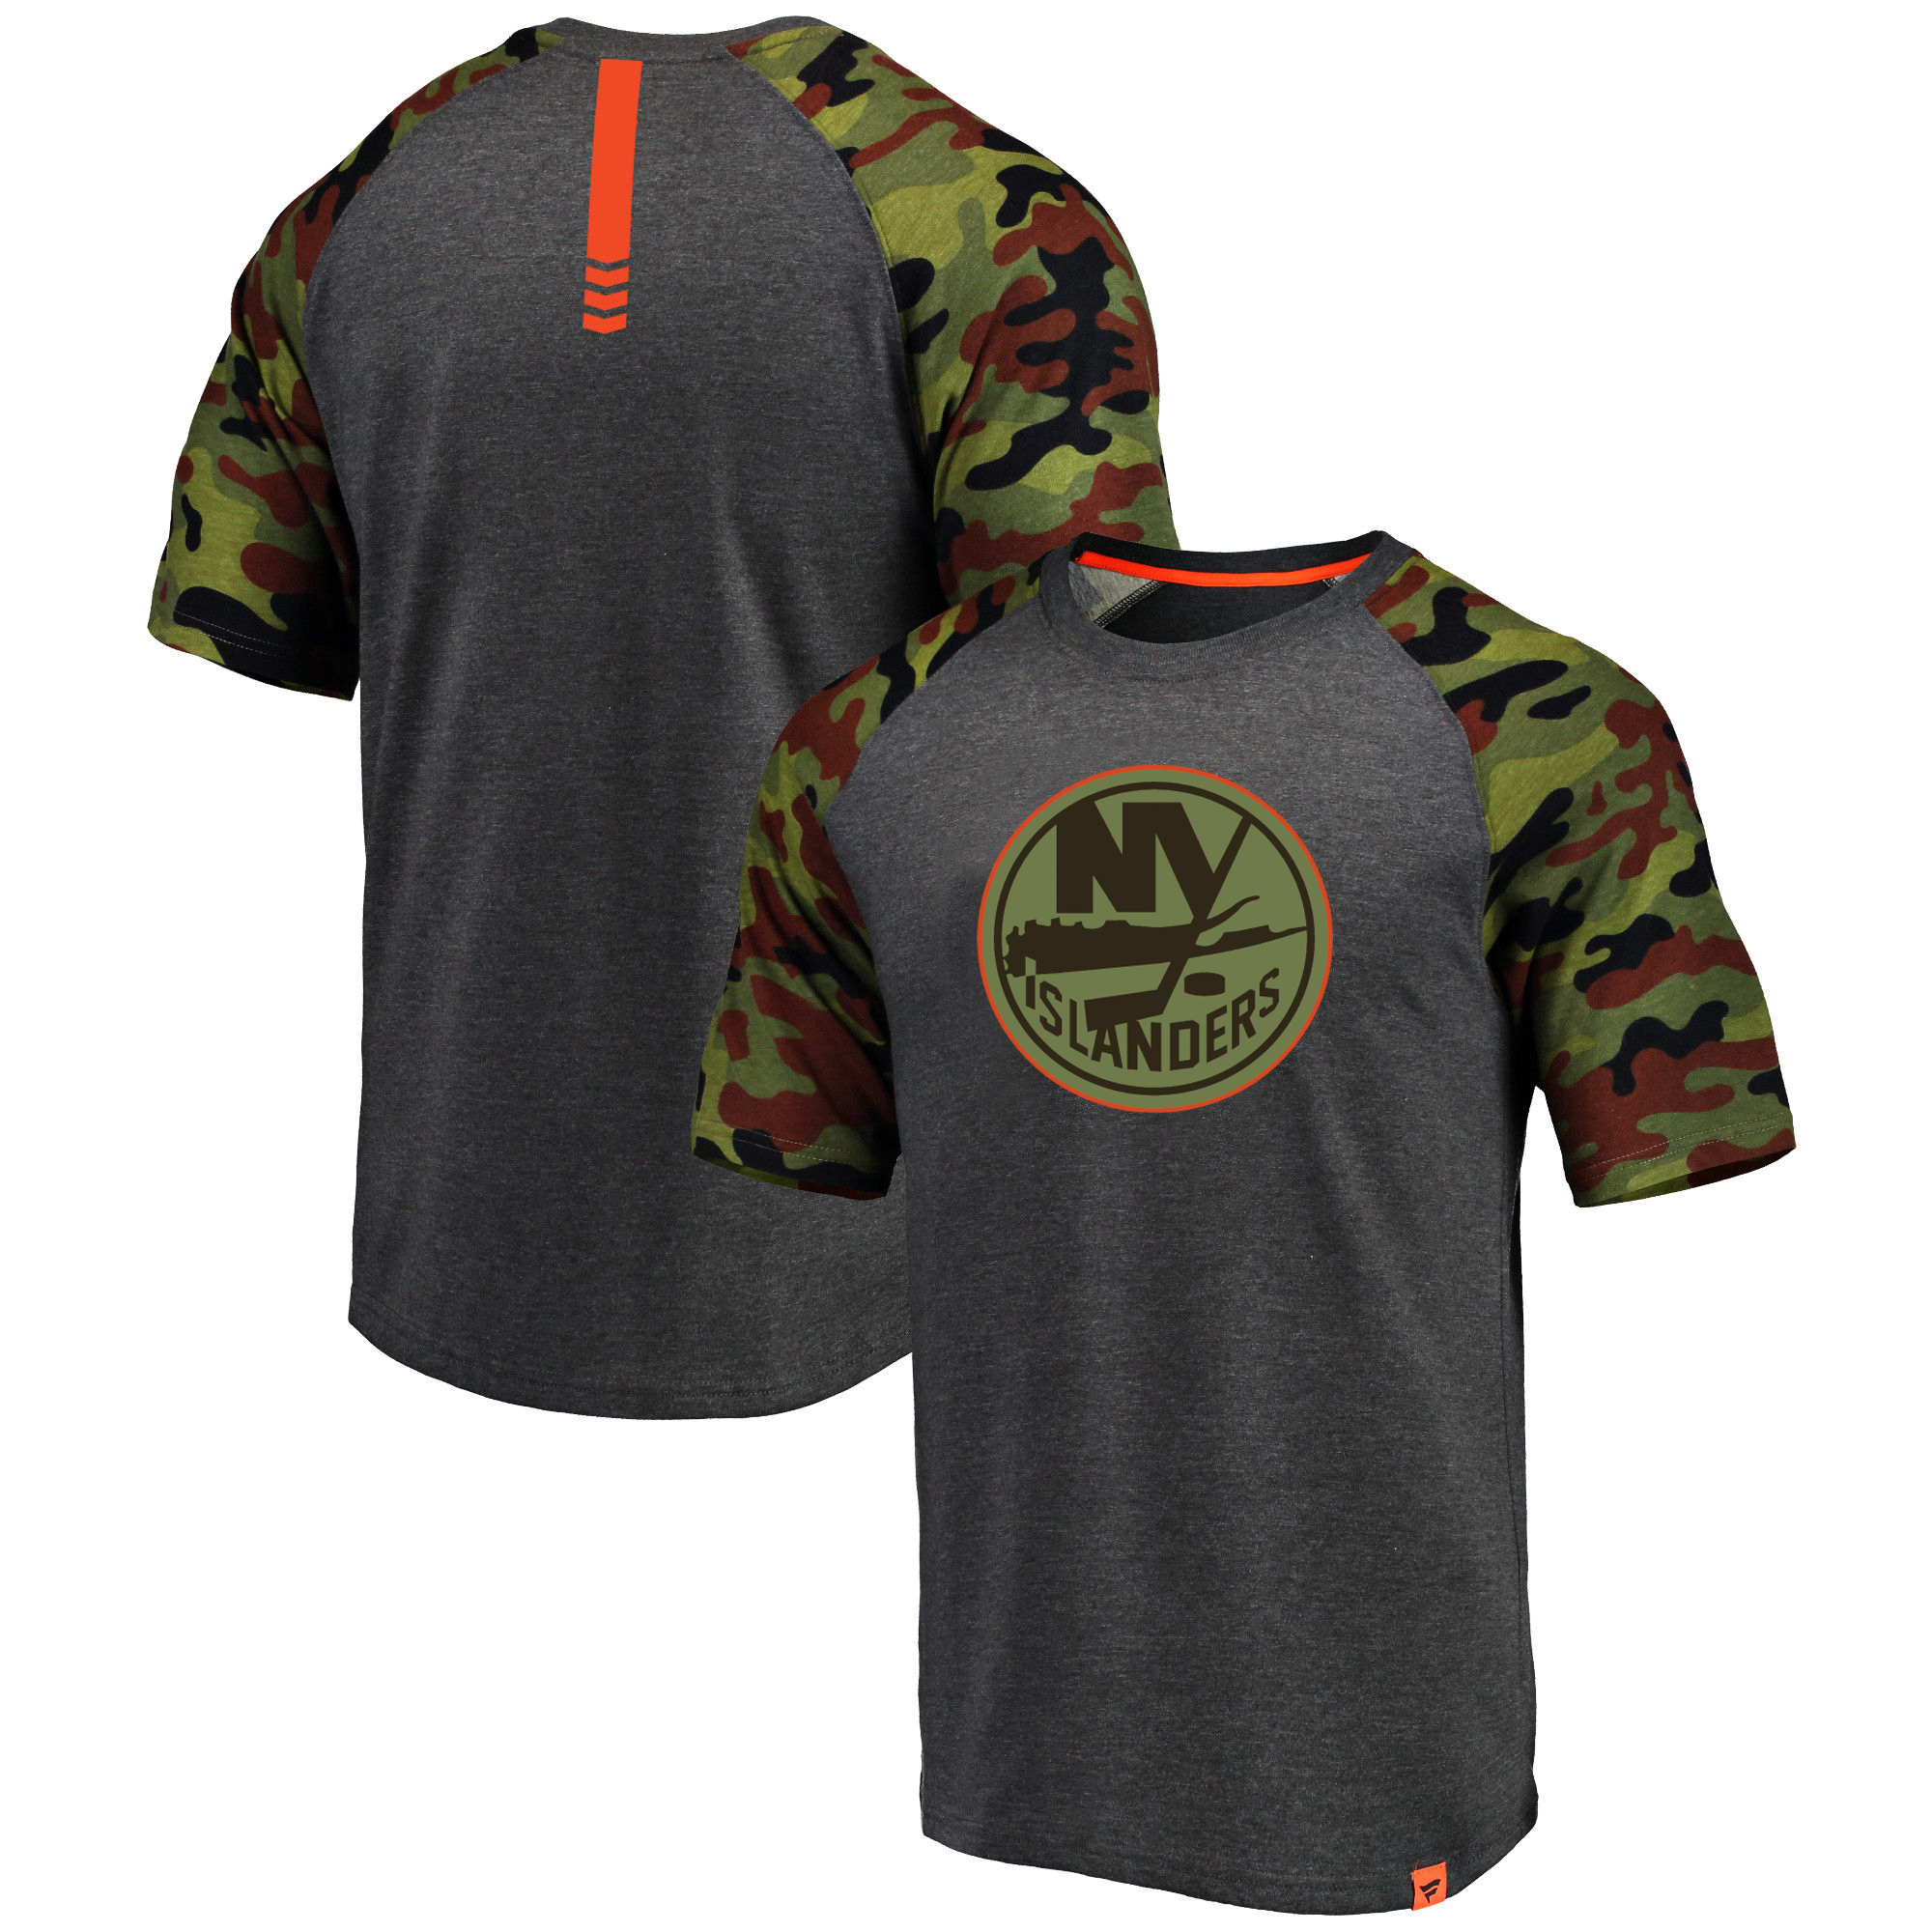 New York Islanders Fanatics Branded Heathered Gray/Camo Recon Camo Raglan T-Shirt